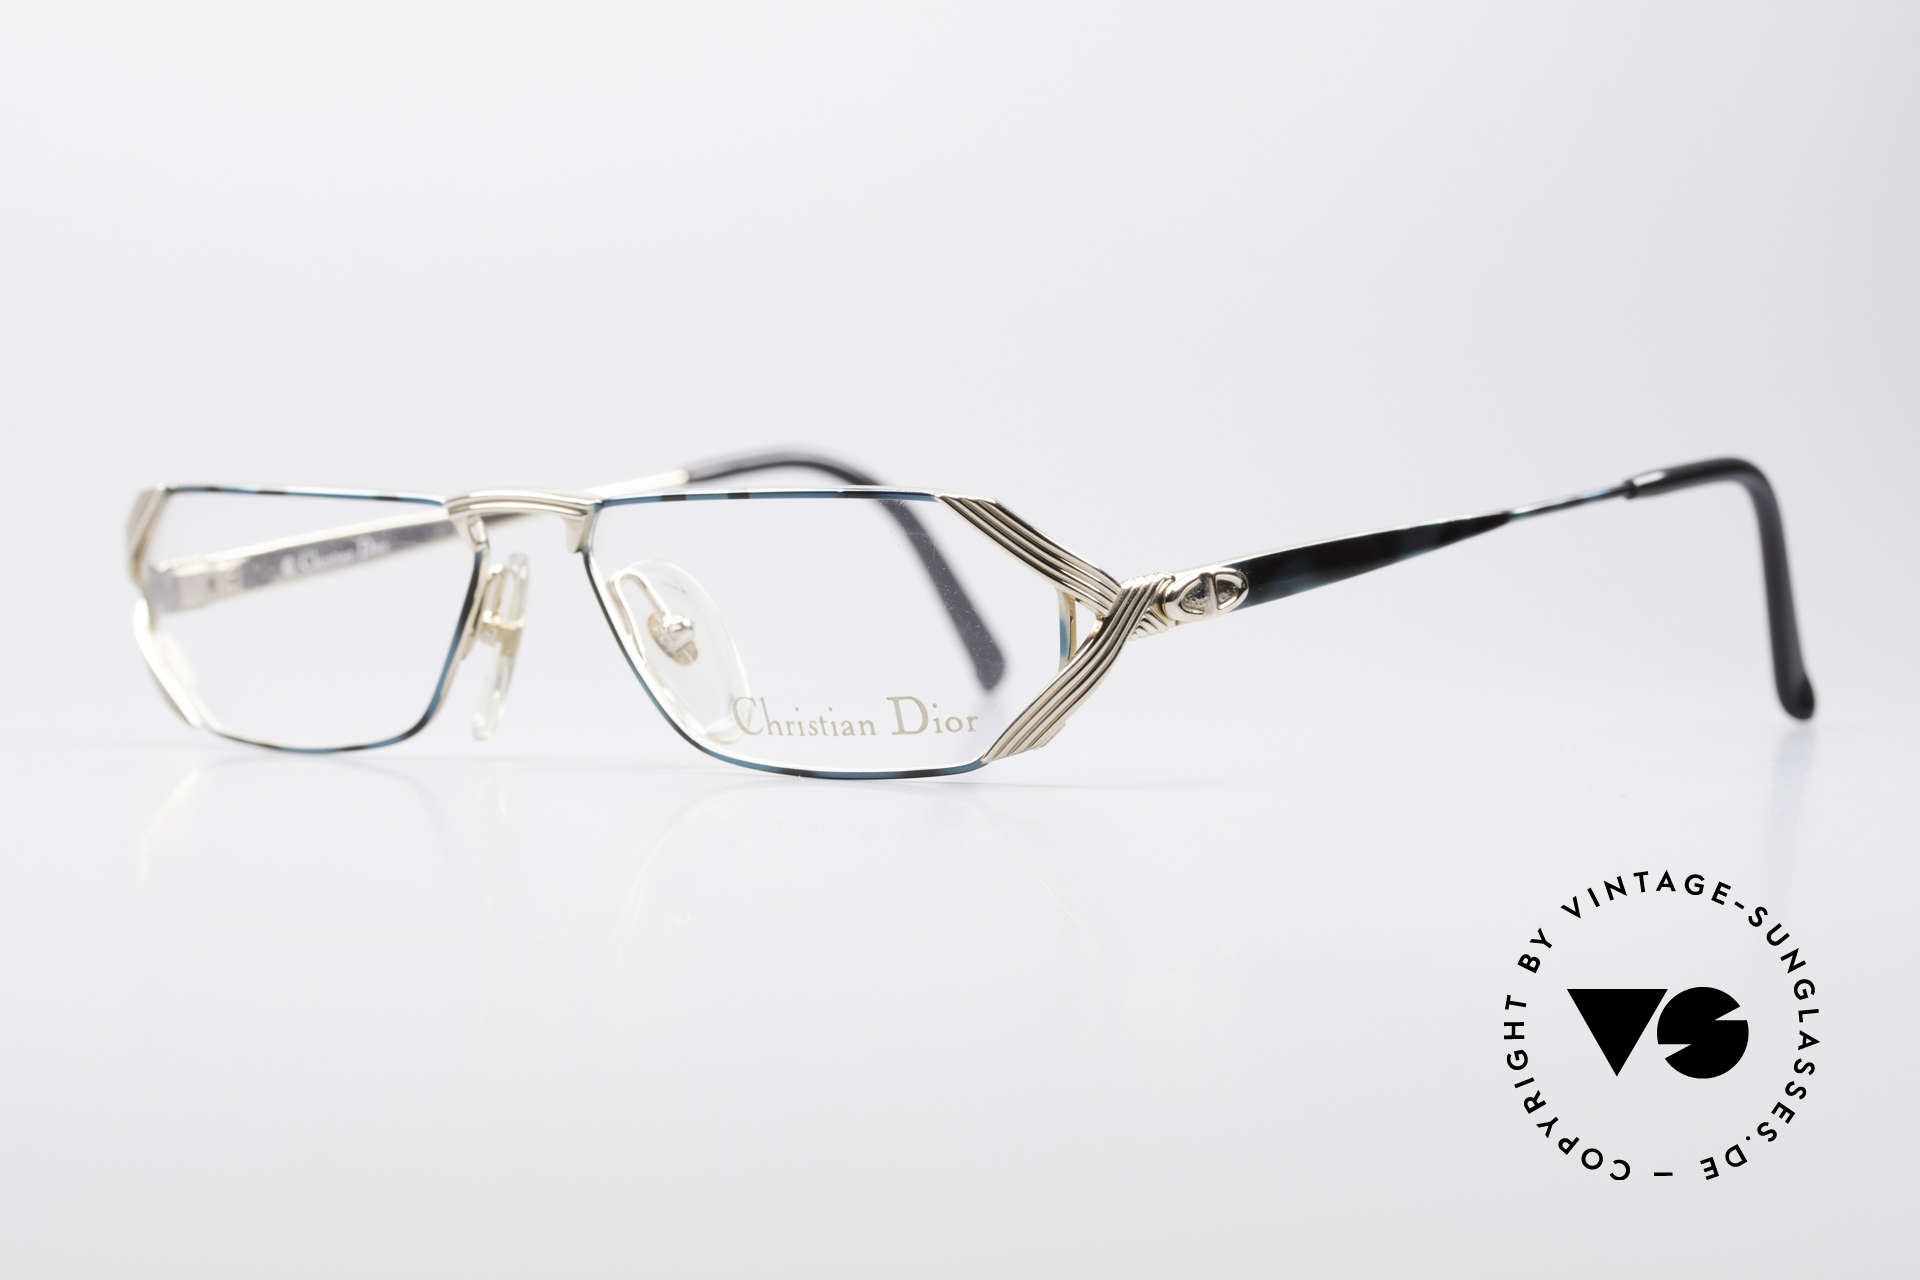 Christian Dior 2617 Vintage Reading Glasses, the unique frame pattern looks teal / gray & gold, Made for Men